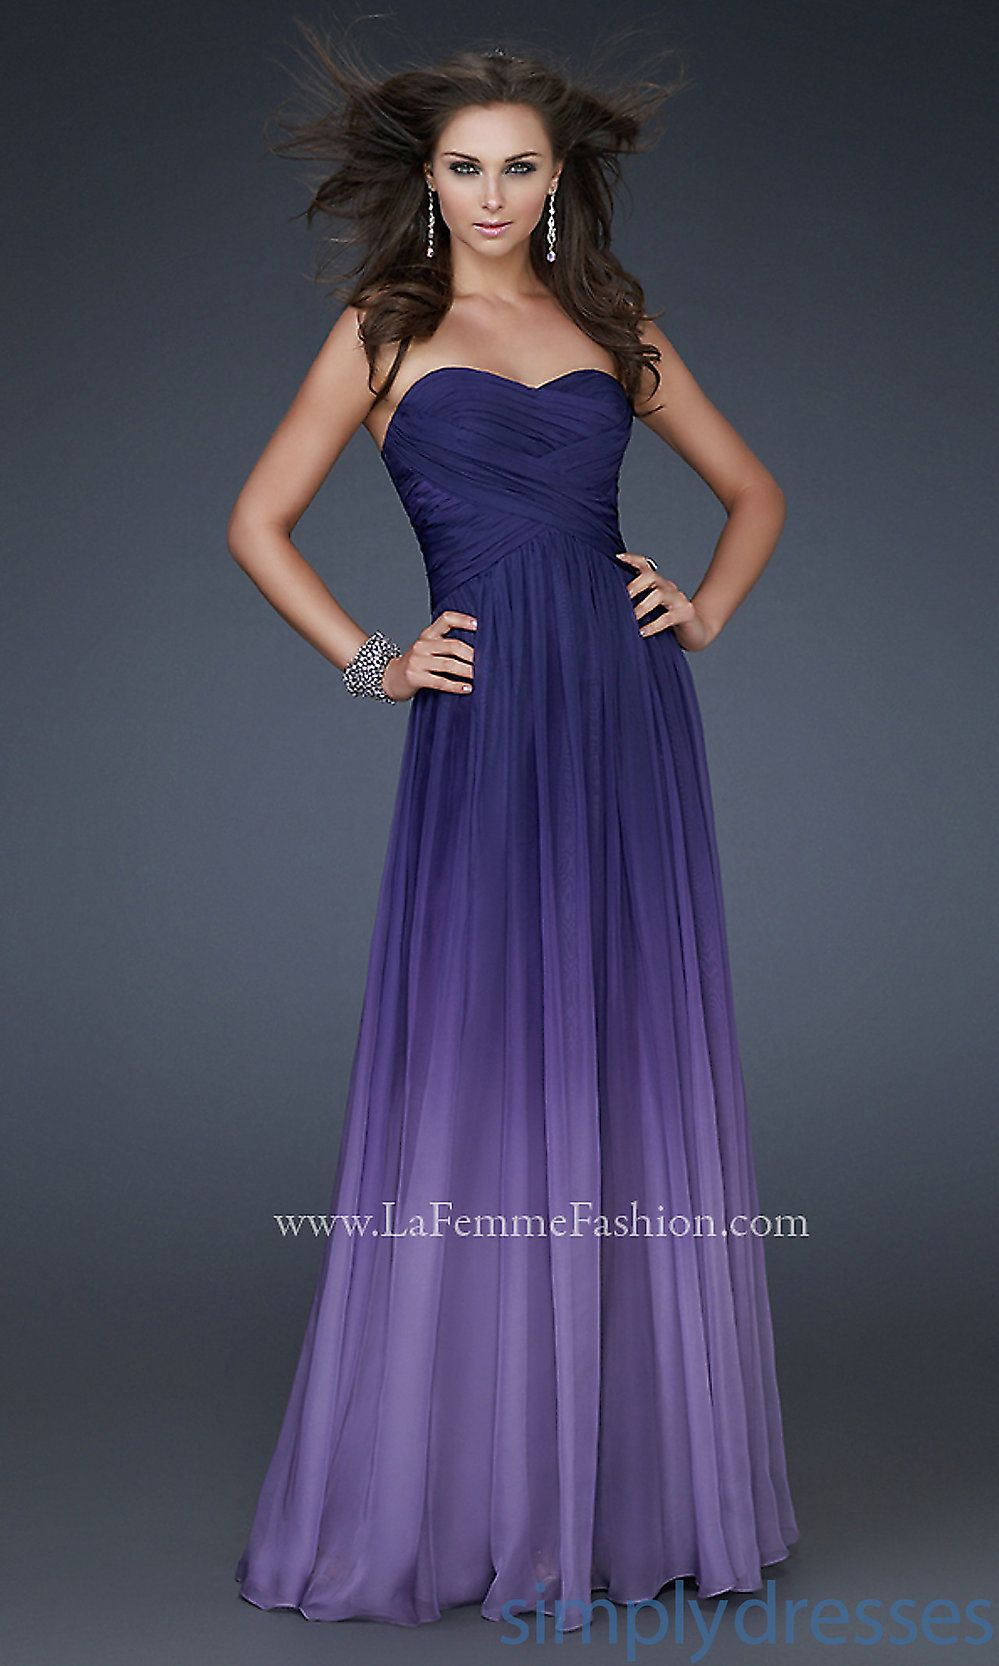 8556dcc6a42 Long Strapless Ombre Gowns